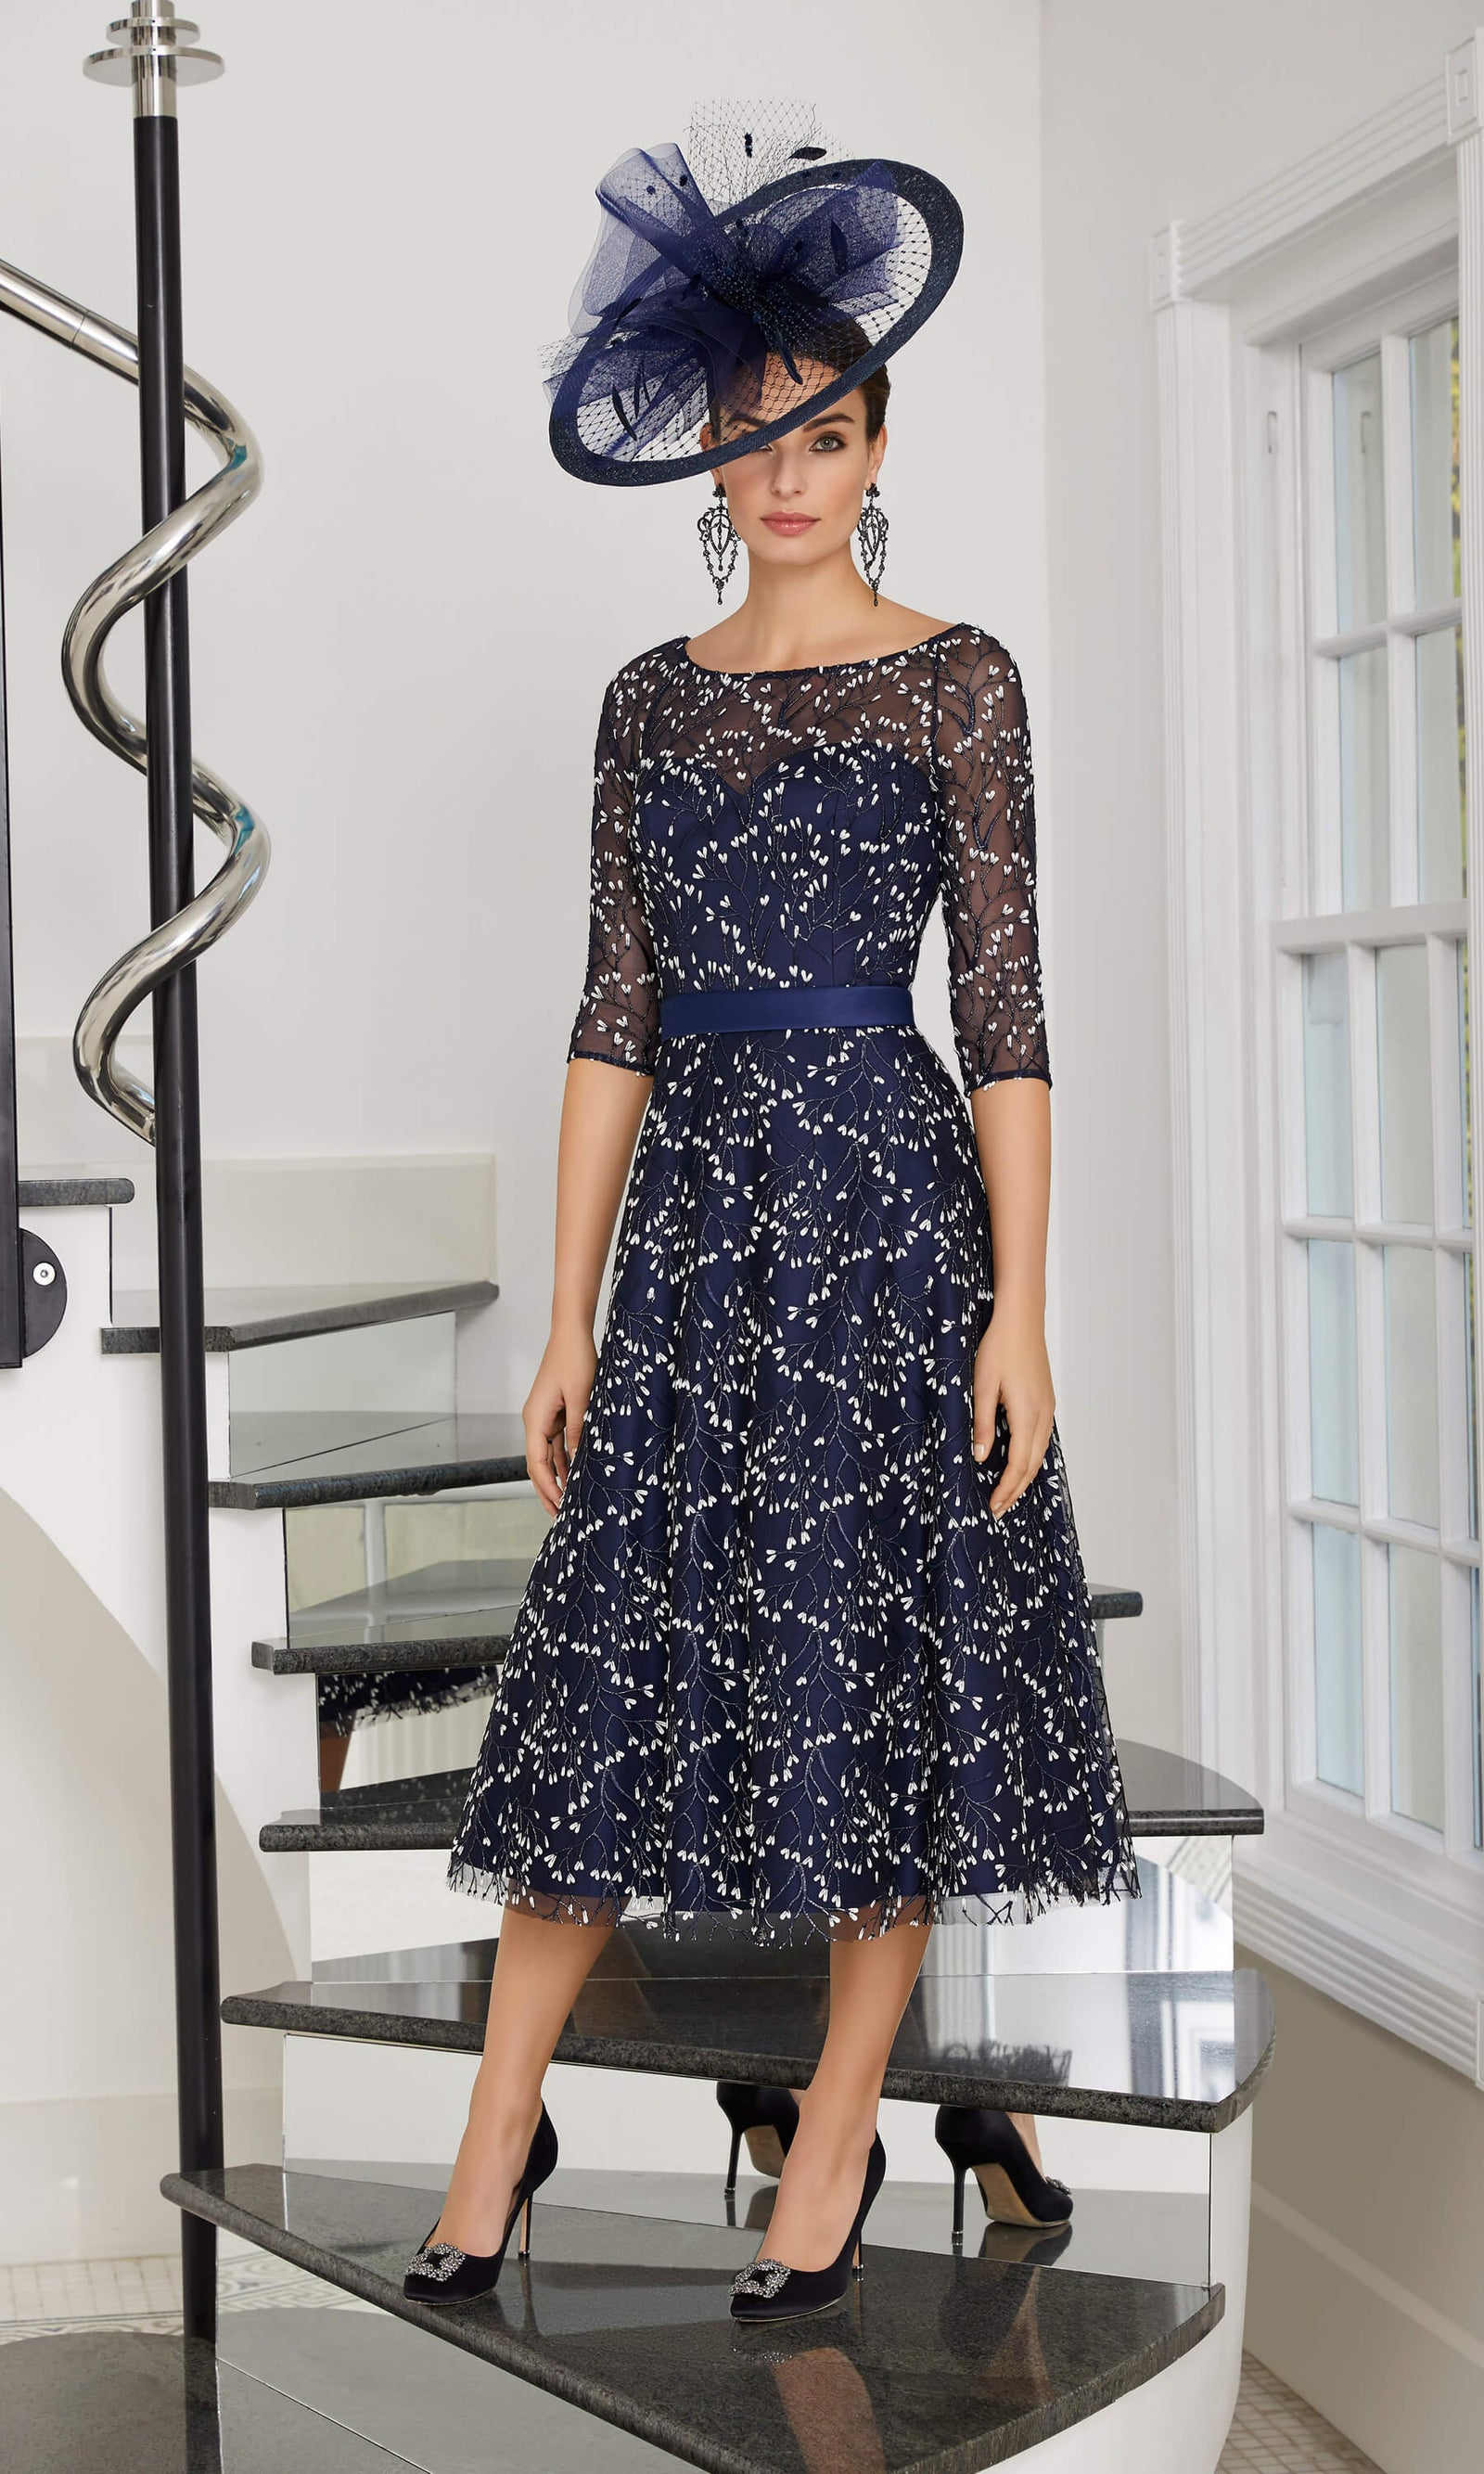 29512A Veni Infantino Ronald Joyce Navy Occasion Dress - Fab Frocks